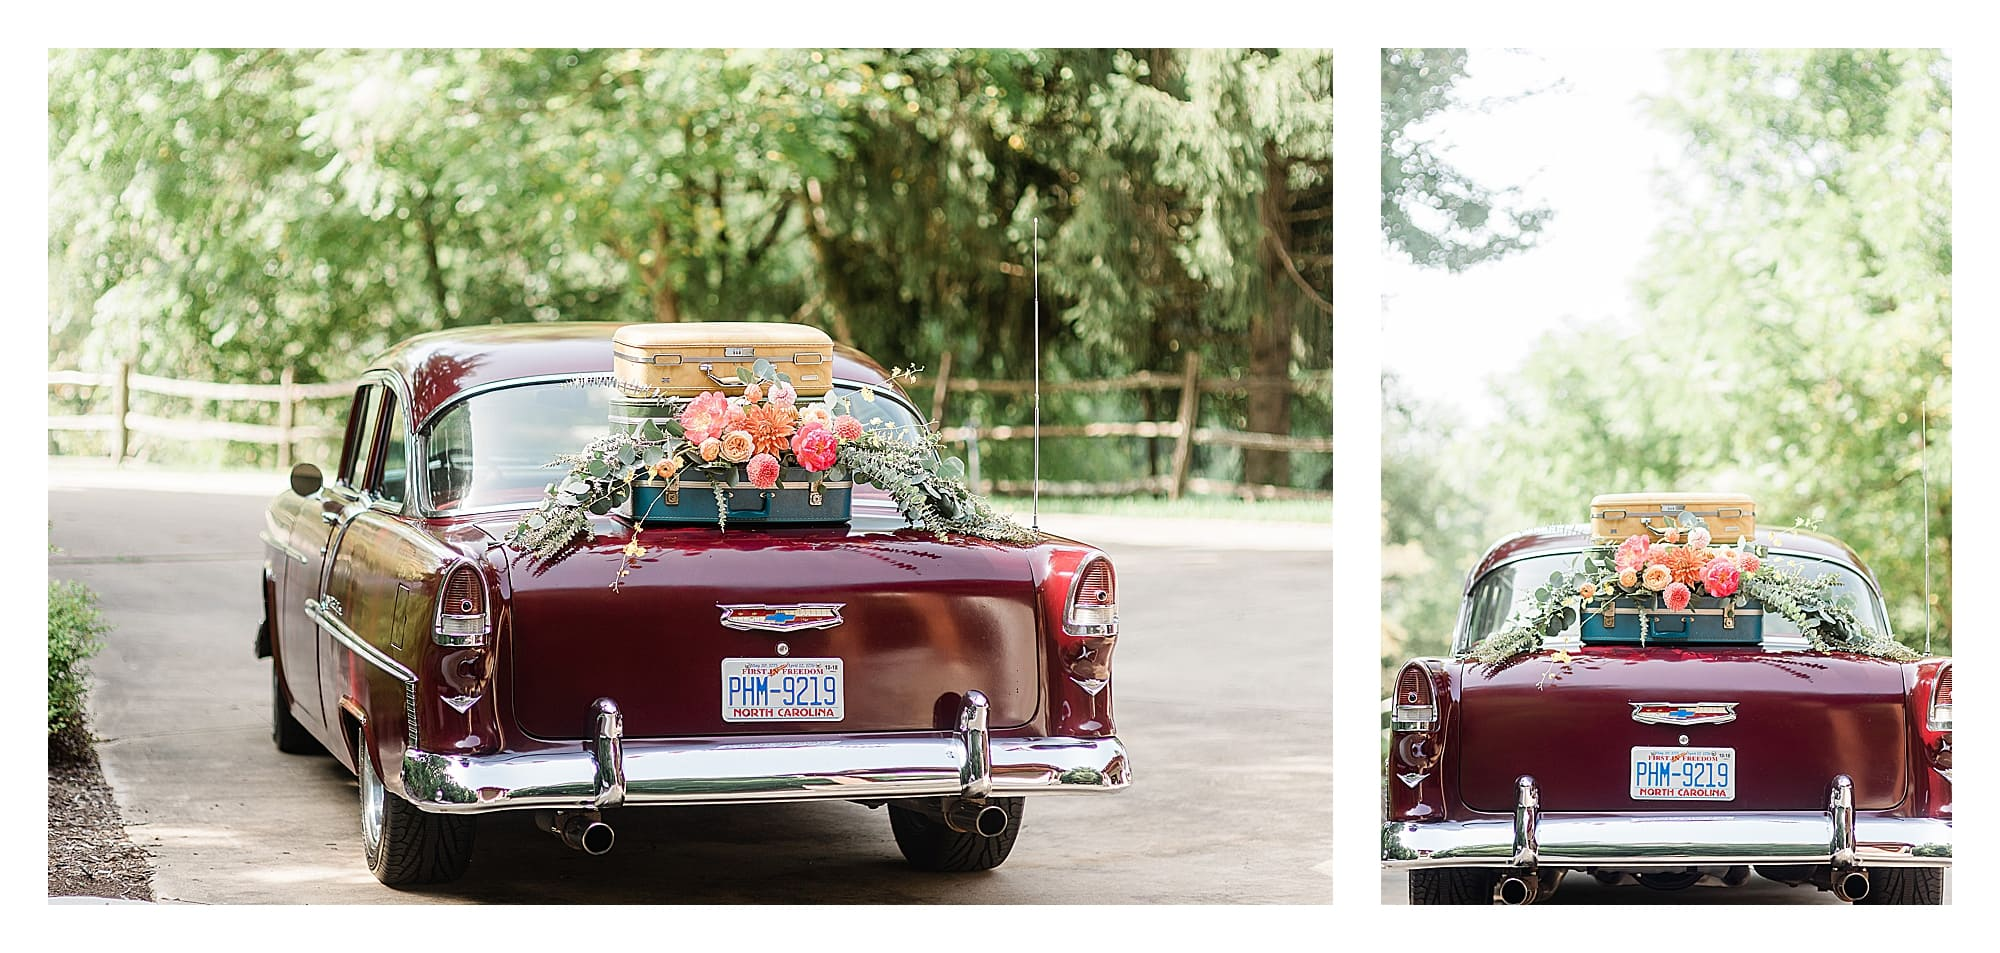 Dark red old fashioned car with suitcases sitting on top of trunk with peach, pink and orange wedding flowers on top